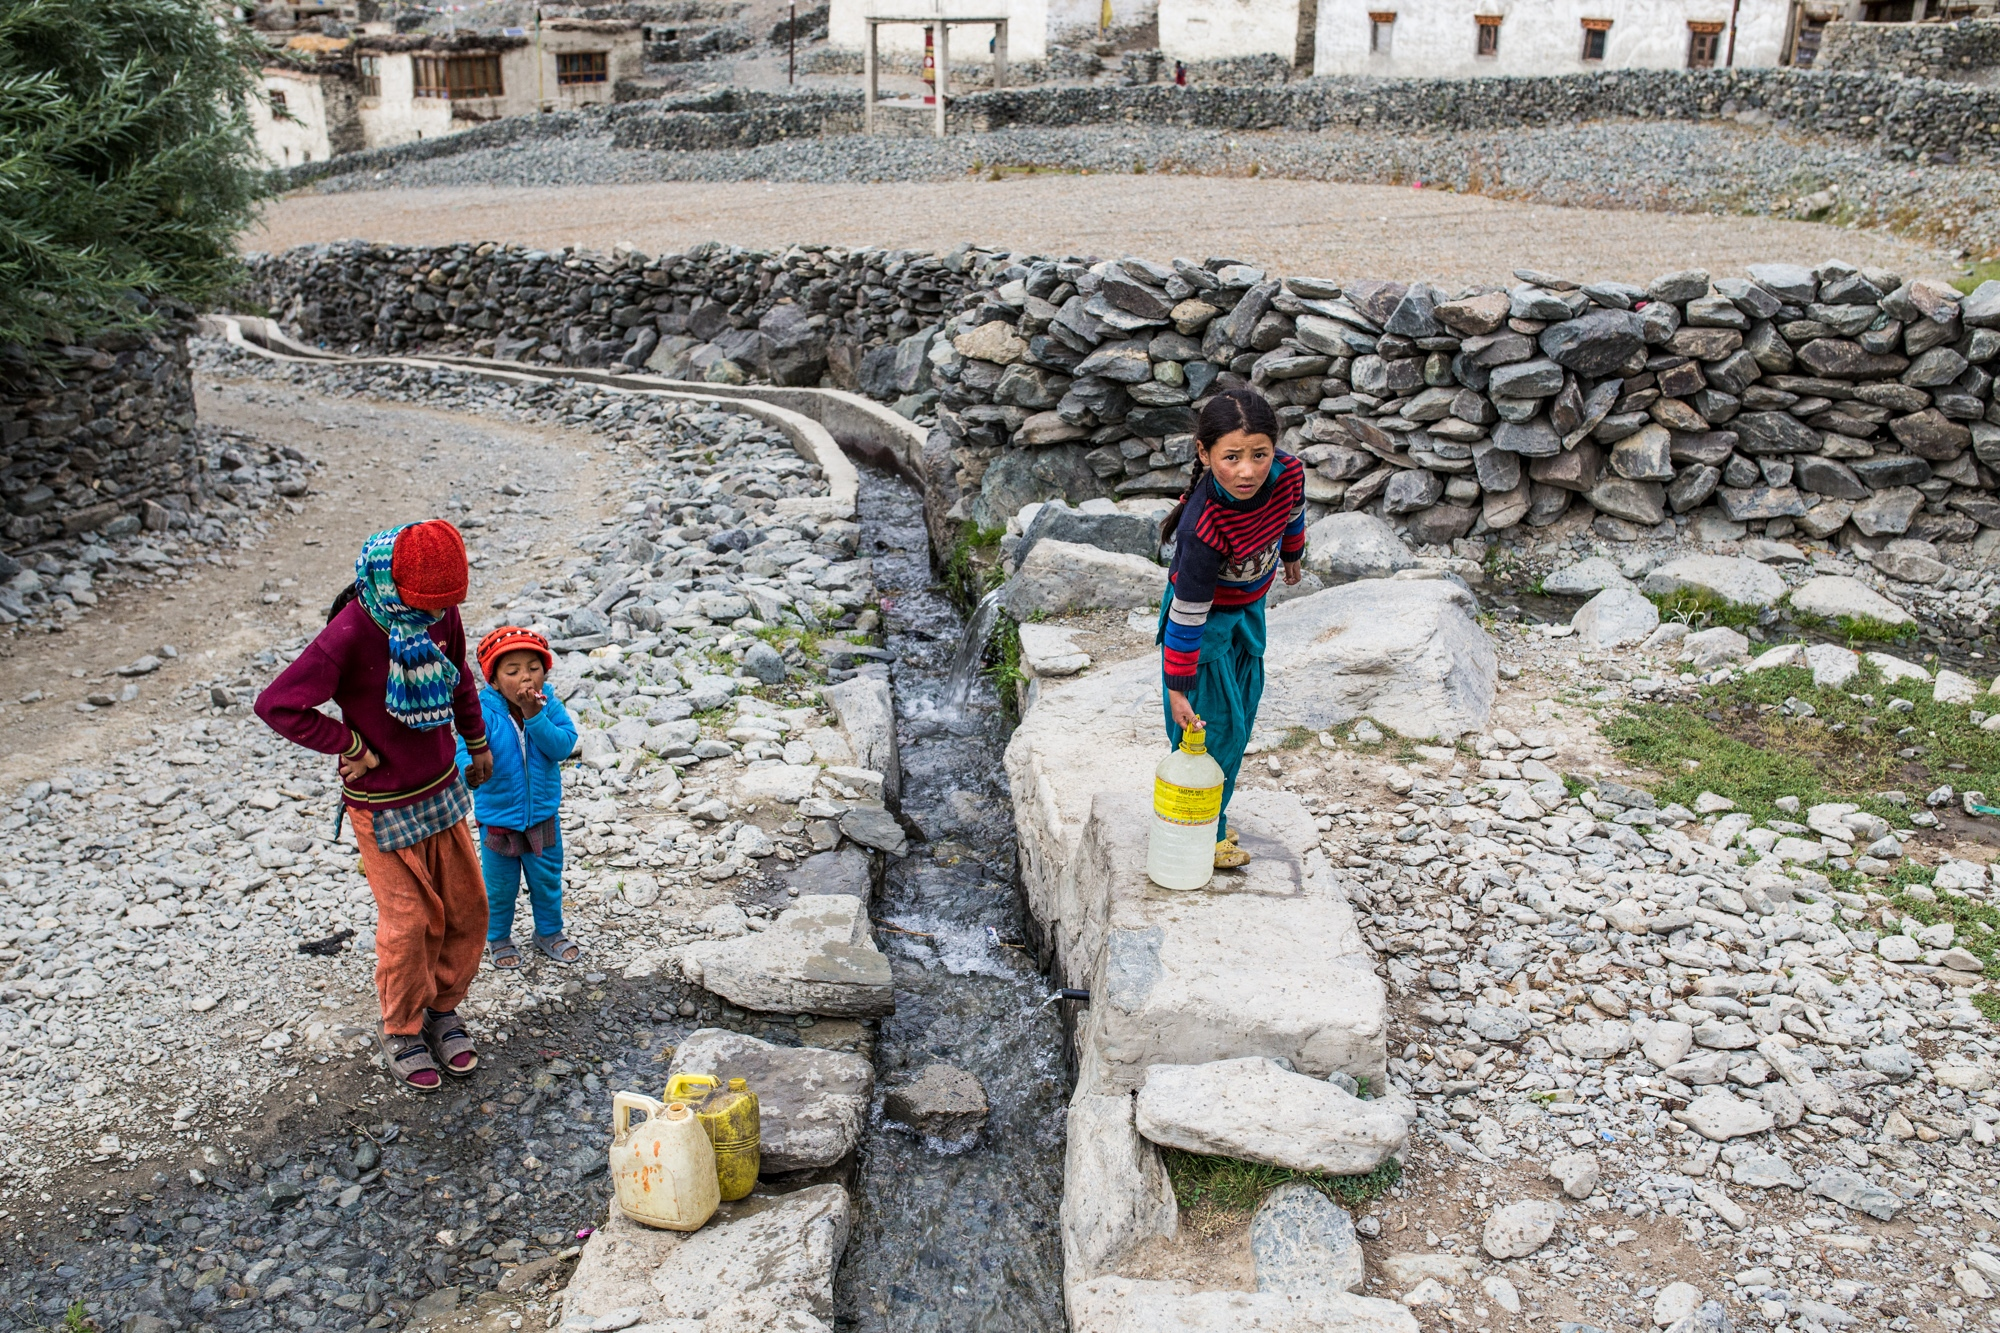 Girls in the Zanskar Himalaya, India, collect water sourced from a spring recharged from winter snow-melt, which is in vast decline due to rising temperatures and black carbon.